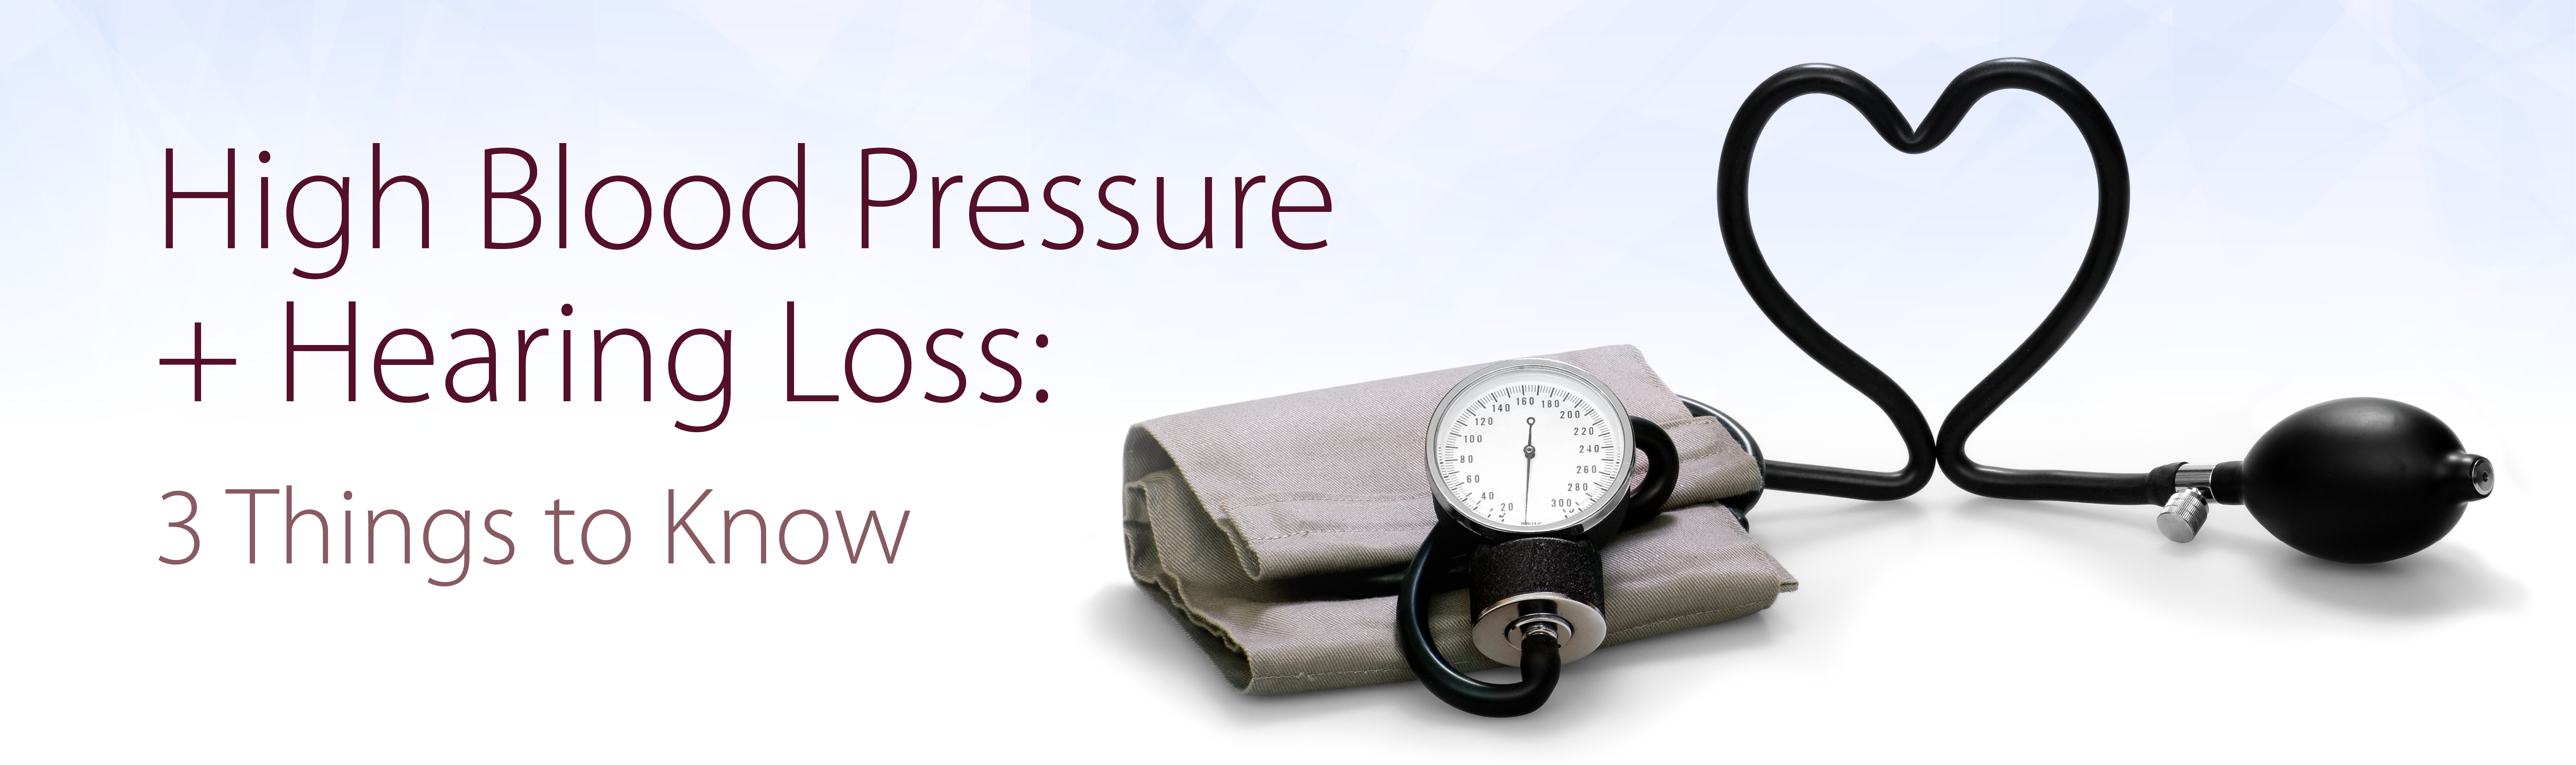 High Blood Pressure + Hearing Loss: 3 Things to Know